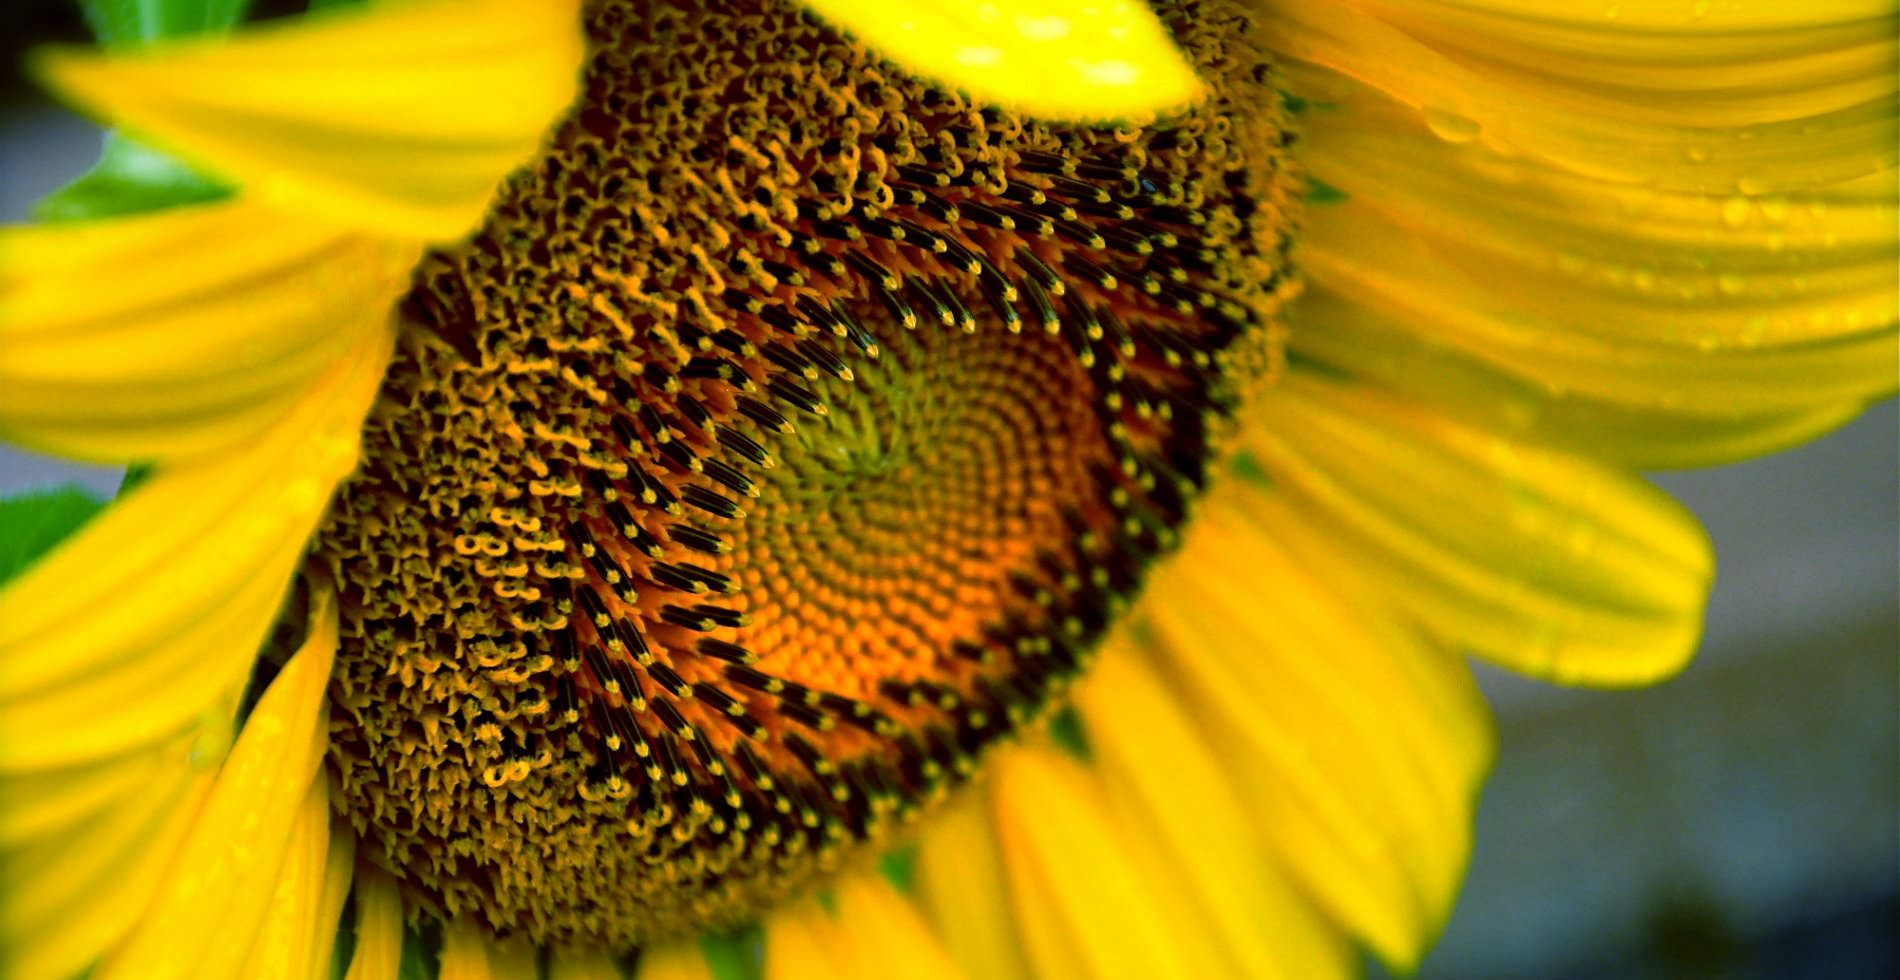 A vibrant yellow sunflower with small dew drops covering the petals.